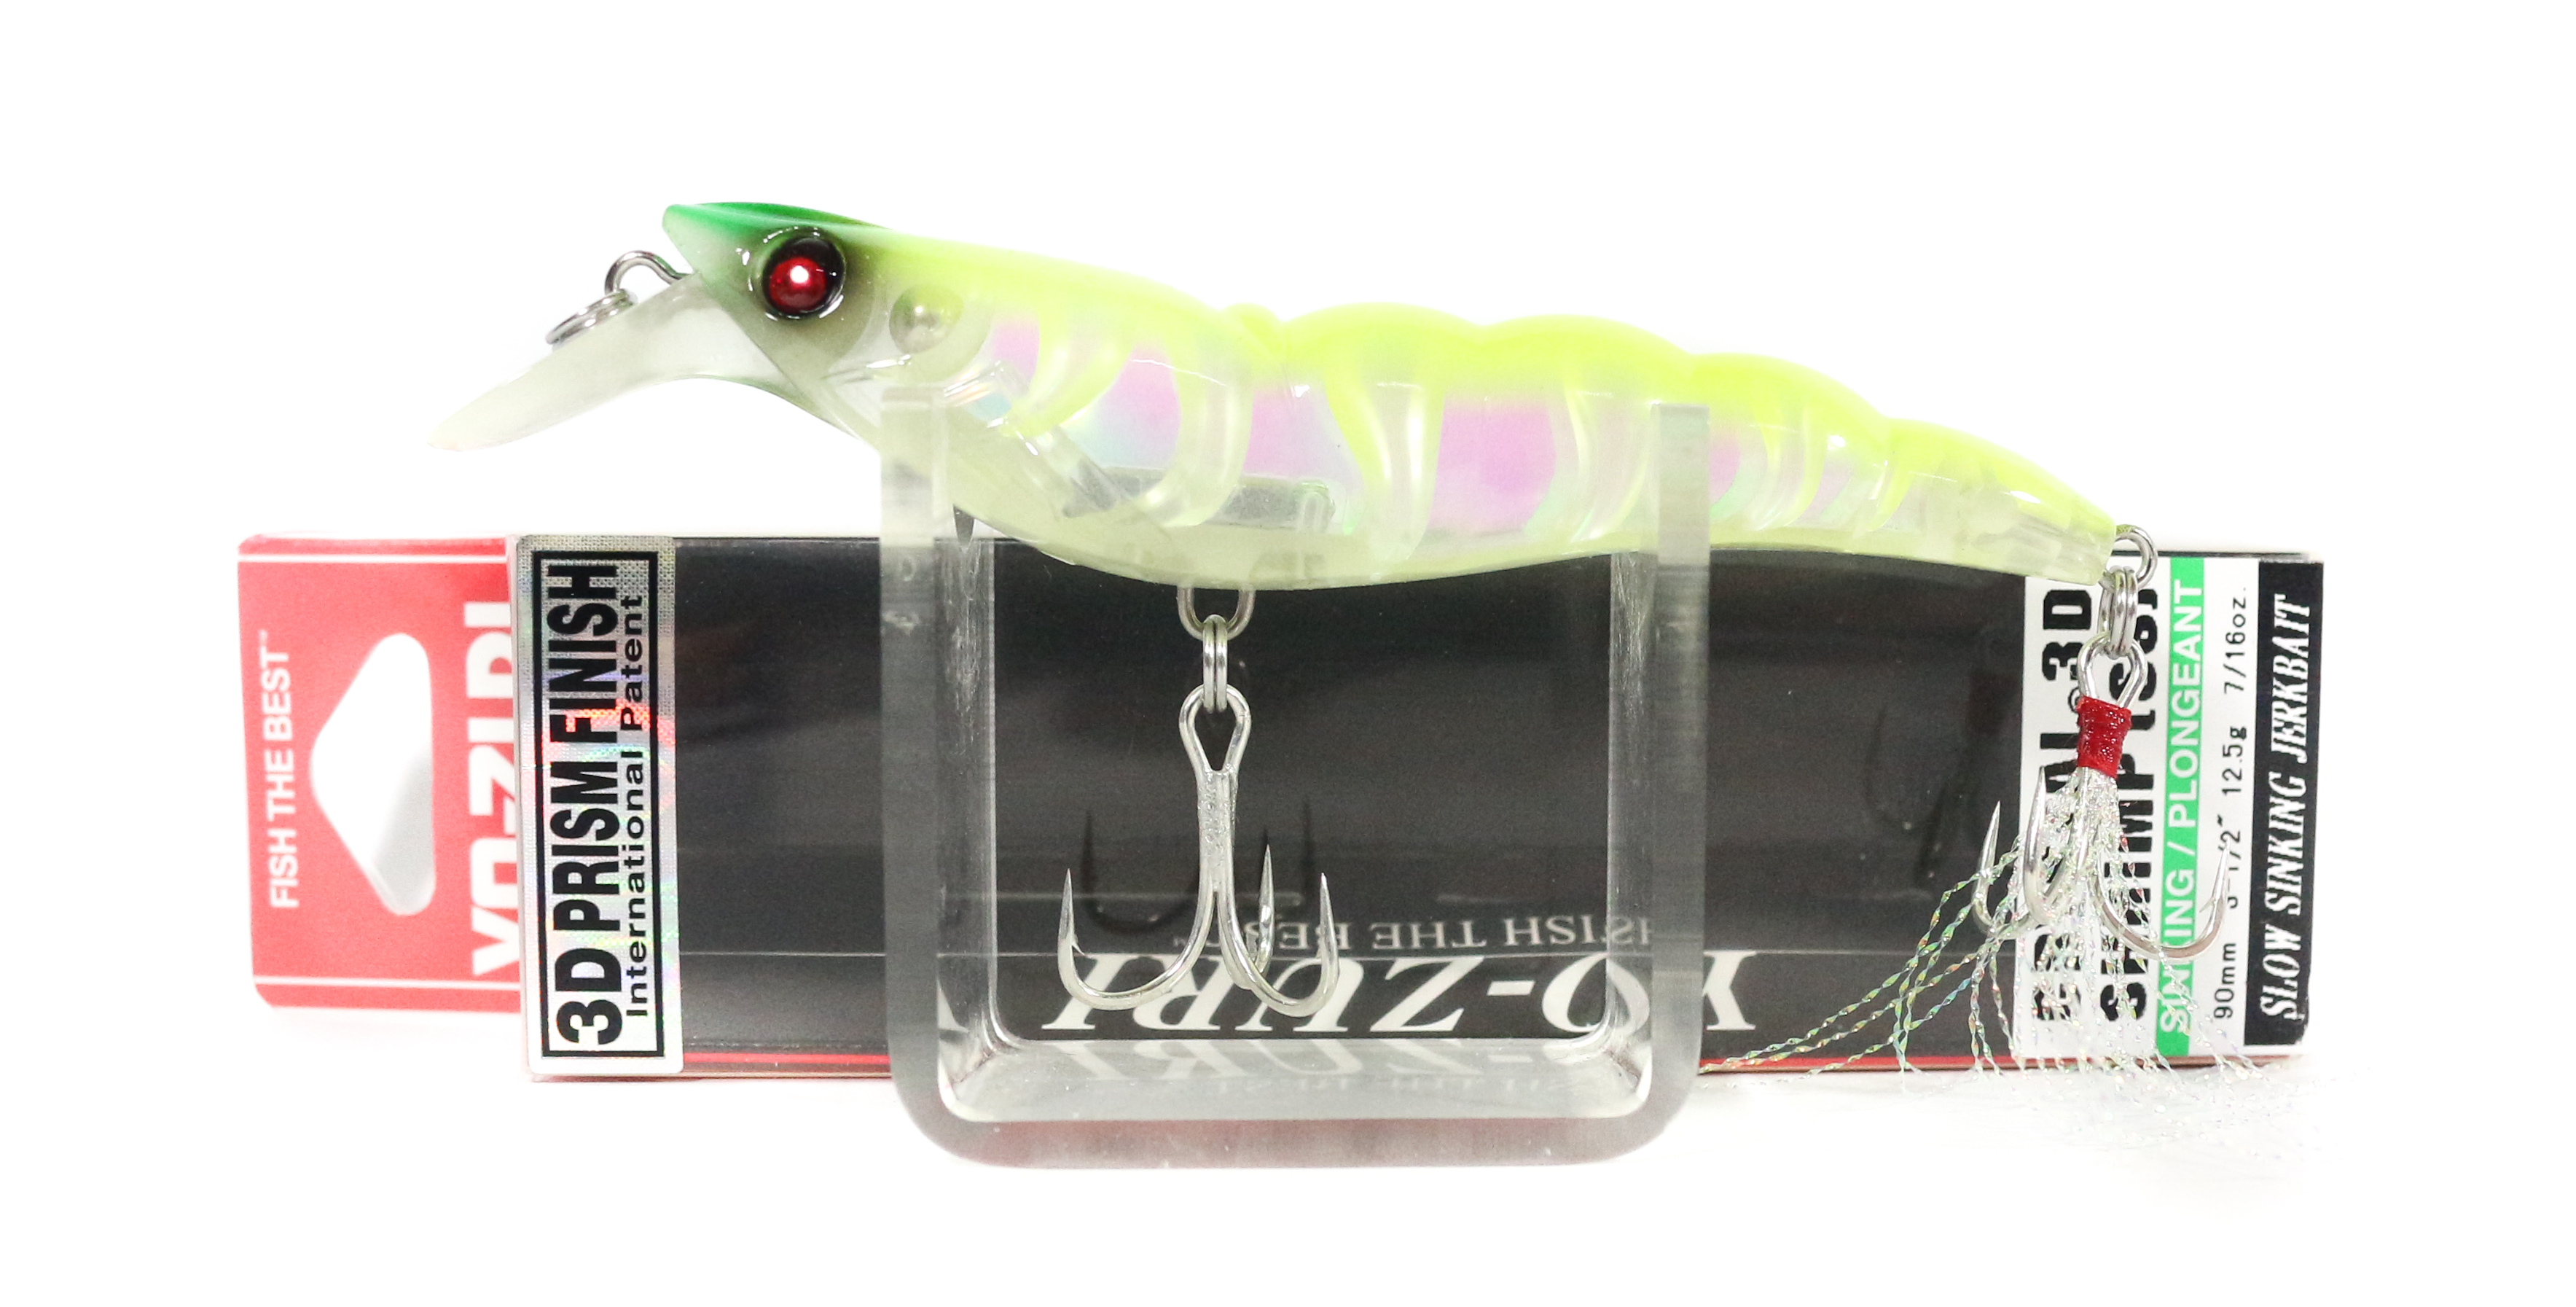 Yo Zuri 3D Crystal Shrimp 90 mm Sinking Lure R1162-LSAC (2622)